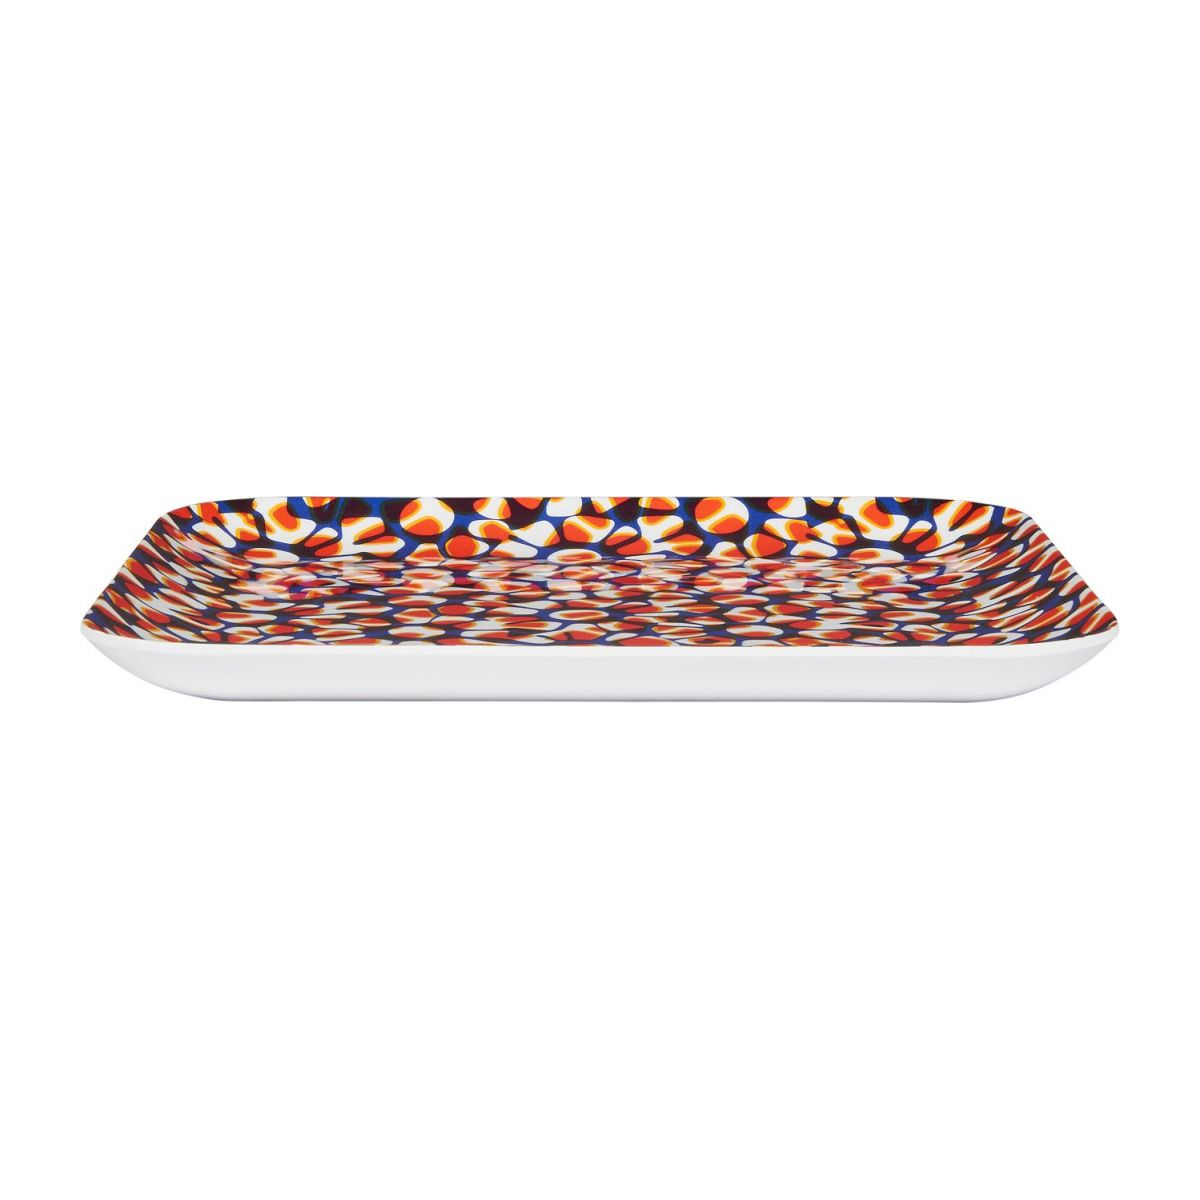 Square tray made of melamine 25x25cm, with patterns n°2